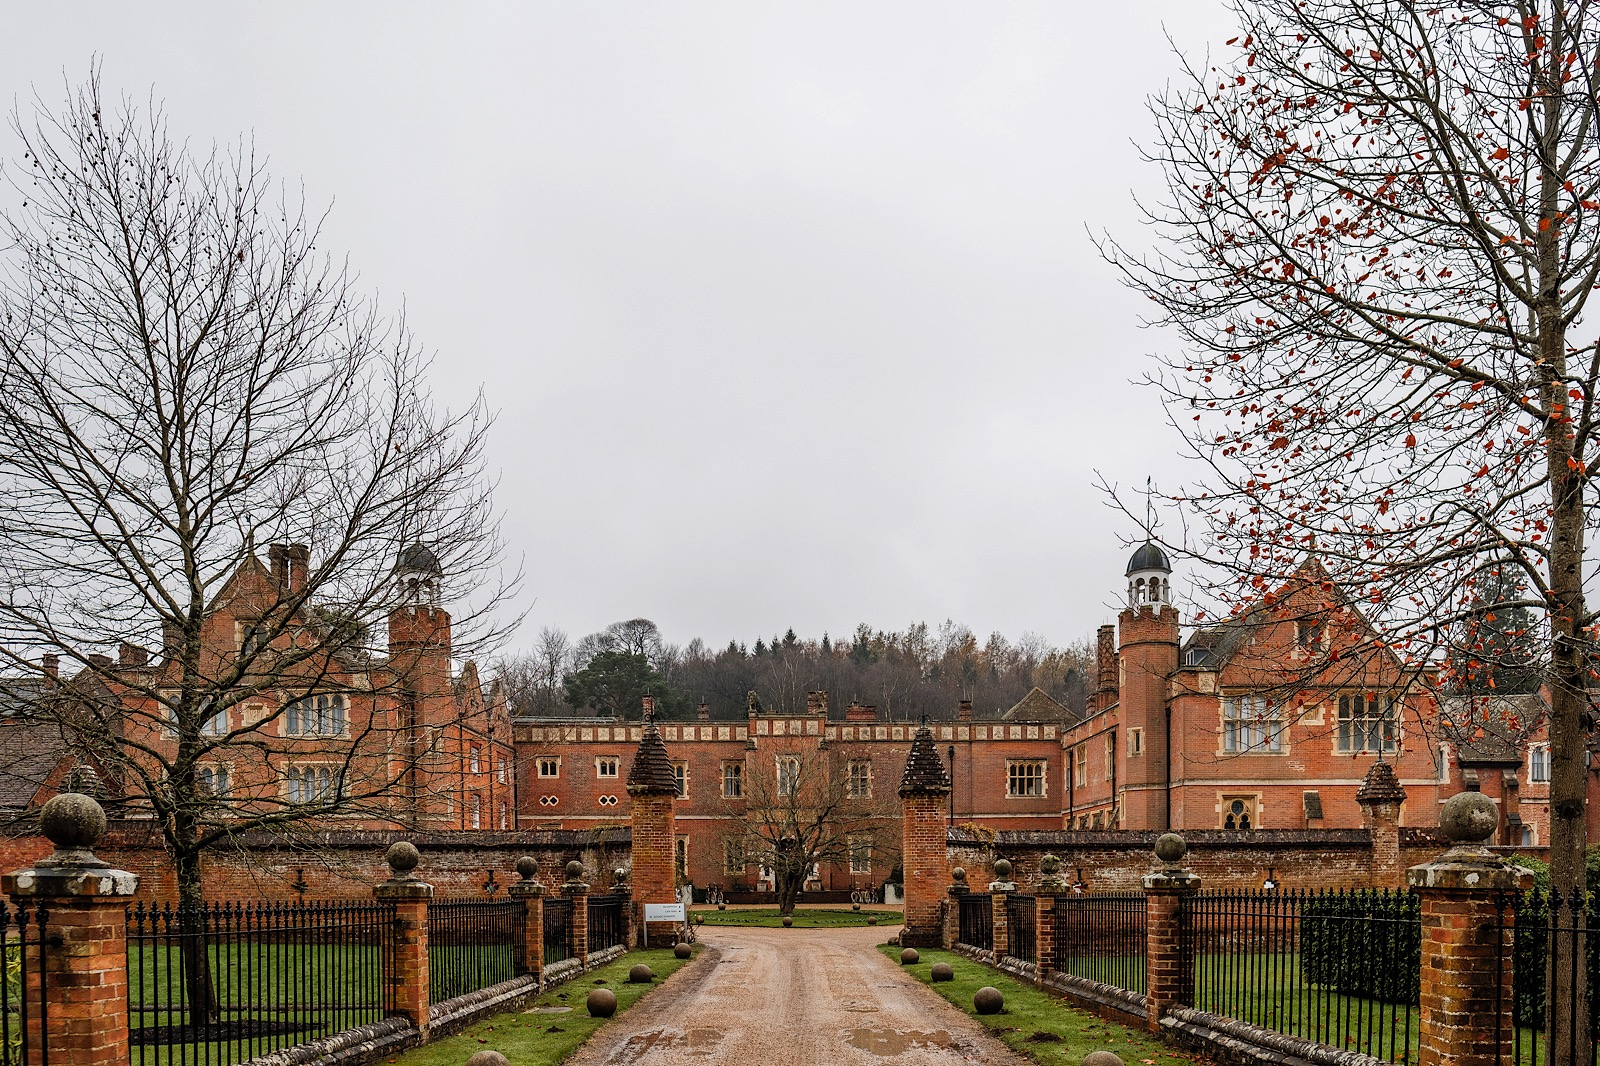 Wotton House in Dorking. A view of the outside of this grand redbrick Surrey wedding venue shot from the driveway